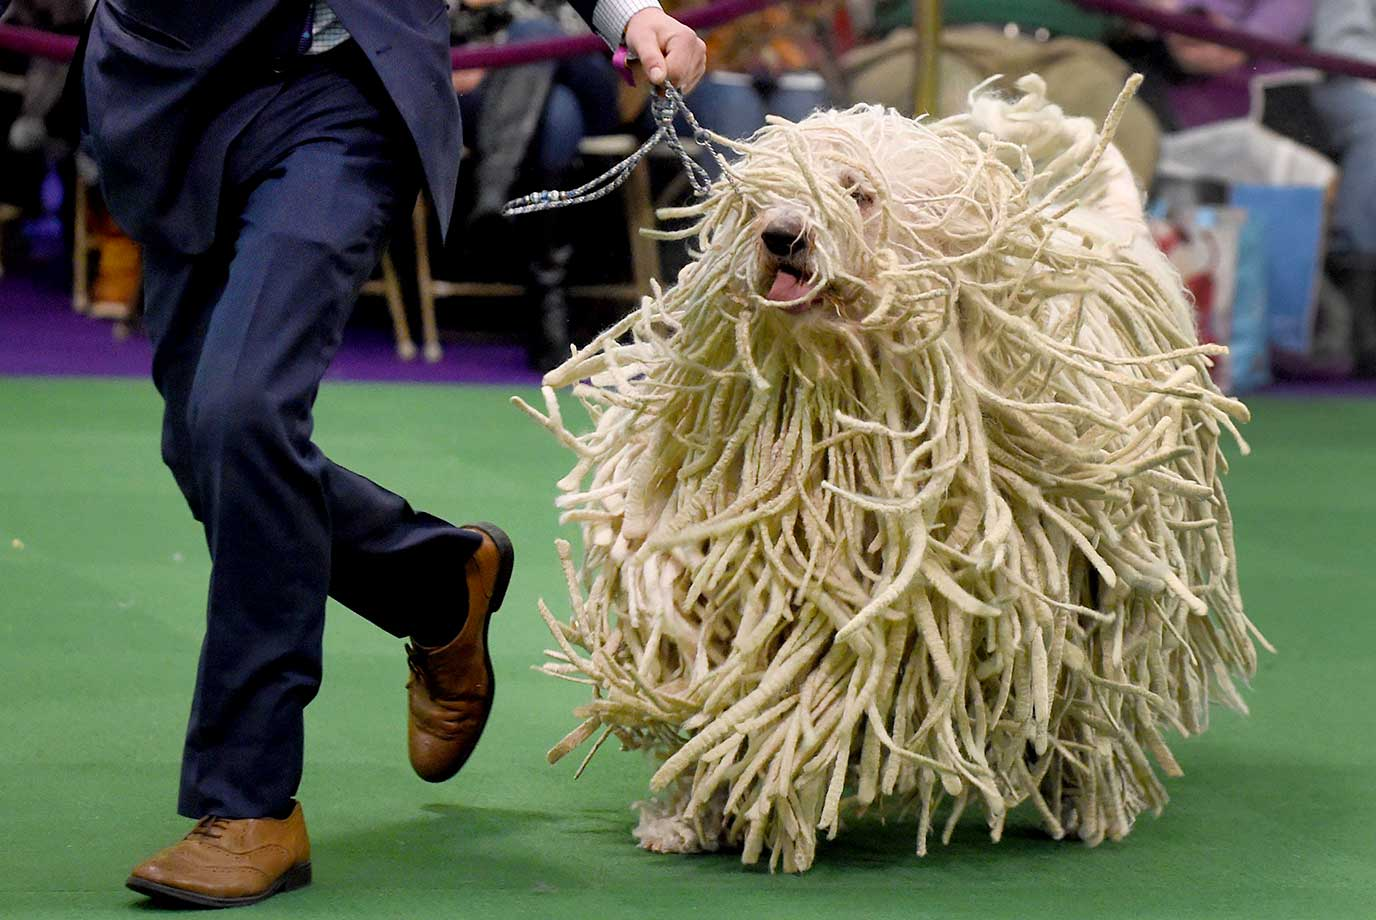 A Komondor is seen in the judging ring at the Westminster Kennel Club Dog Show.